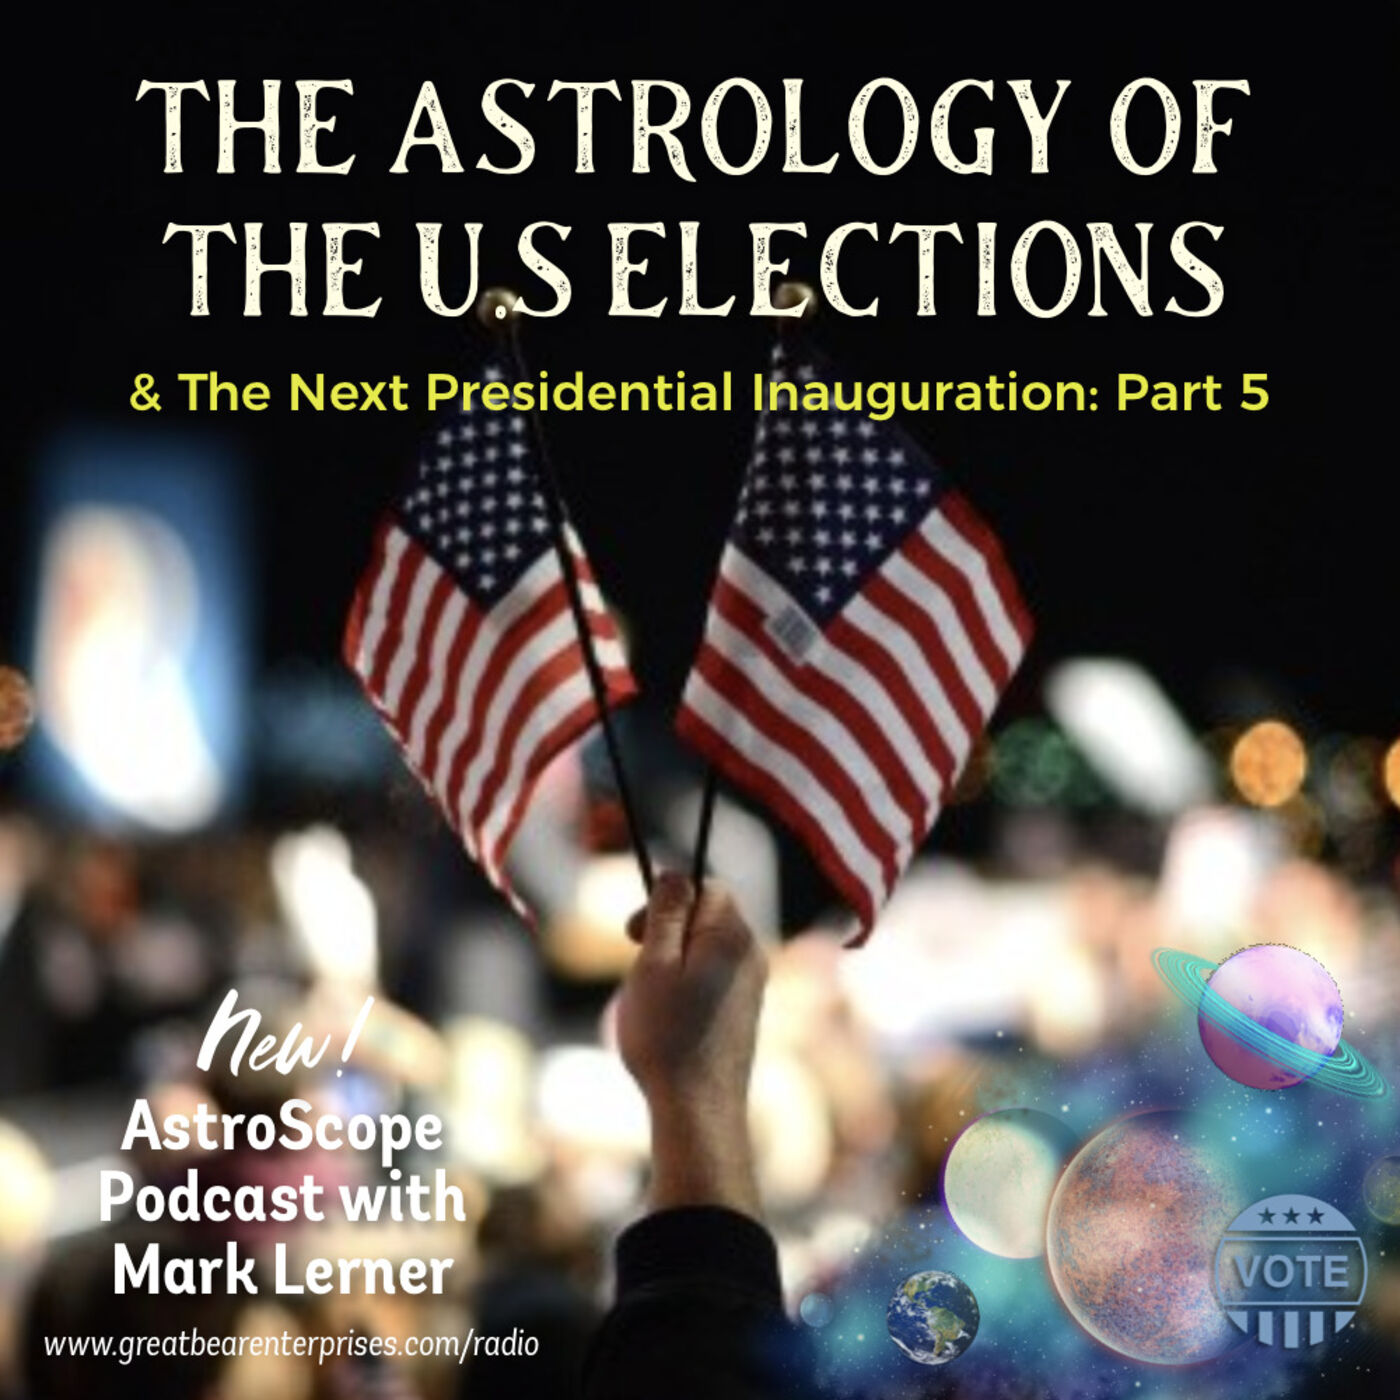 The Astrology of the 2020 U.S. Elections & the Next Presidential Inauguration: Part 5